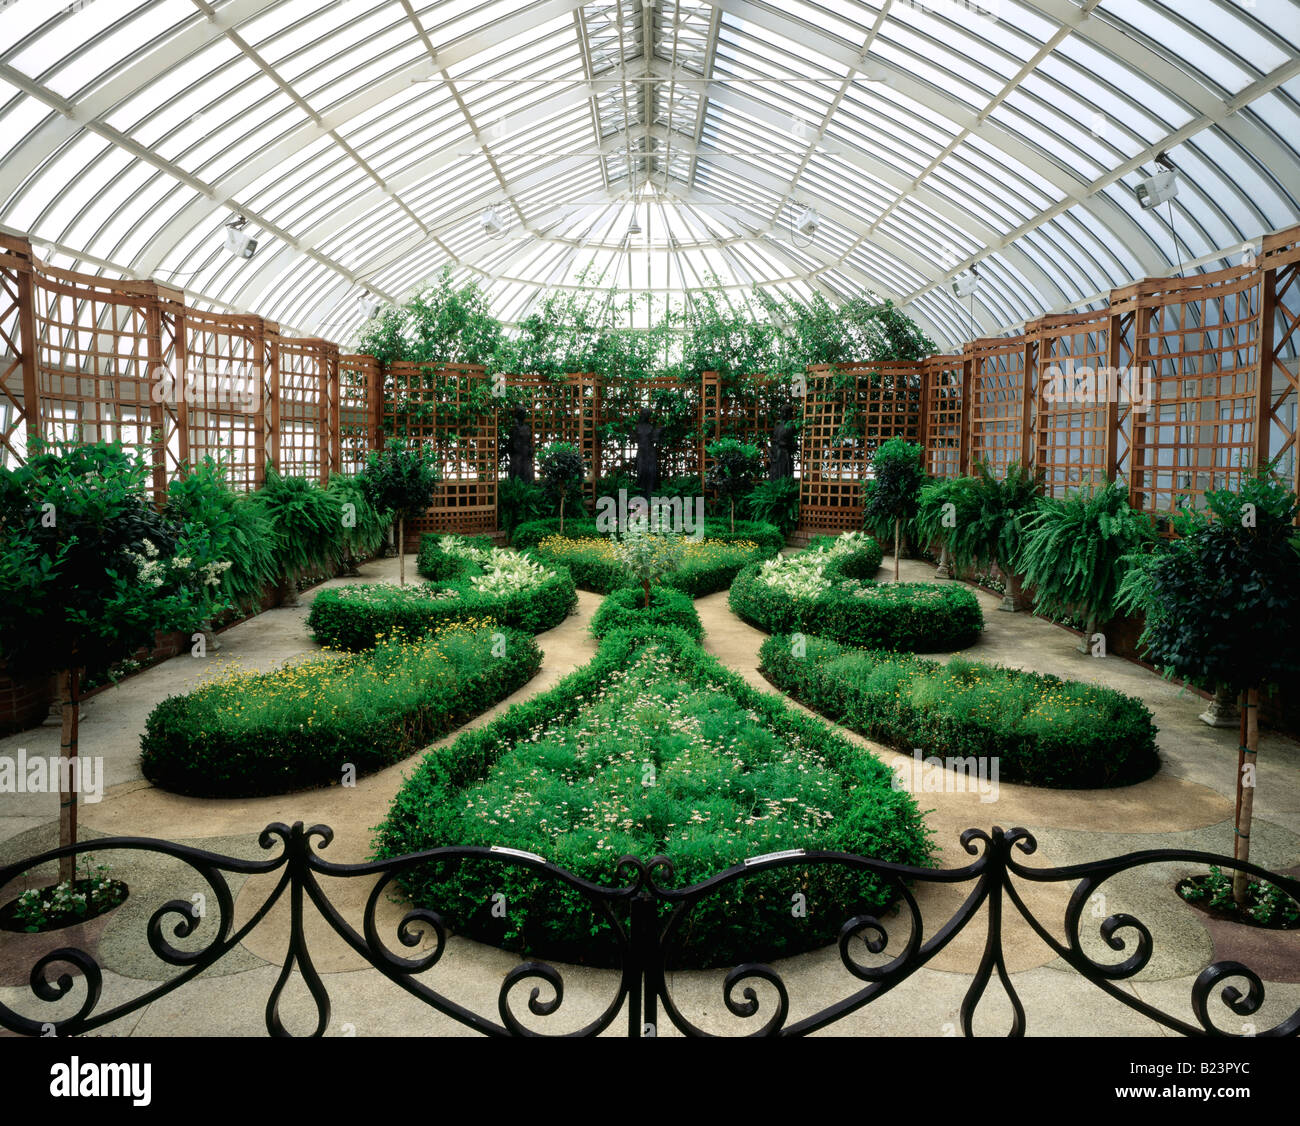 PHIPPS CONSERVATORY, SCHENLEY PARK, PITTSBURGH, PENNSYLVANIA, USA - Stock Image